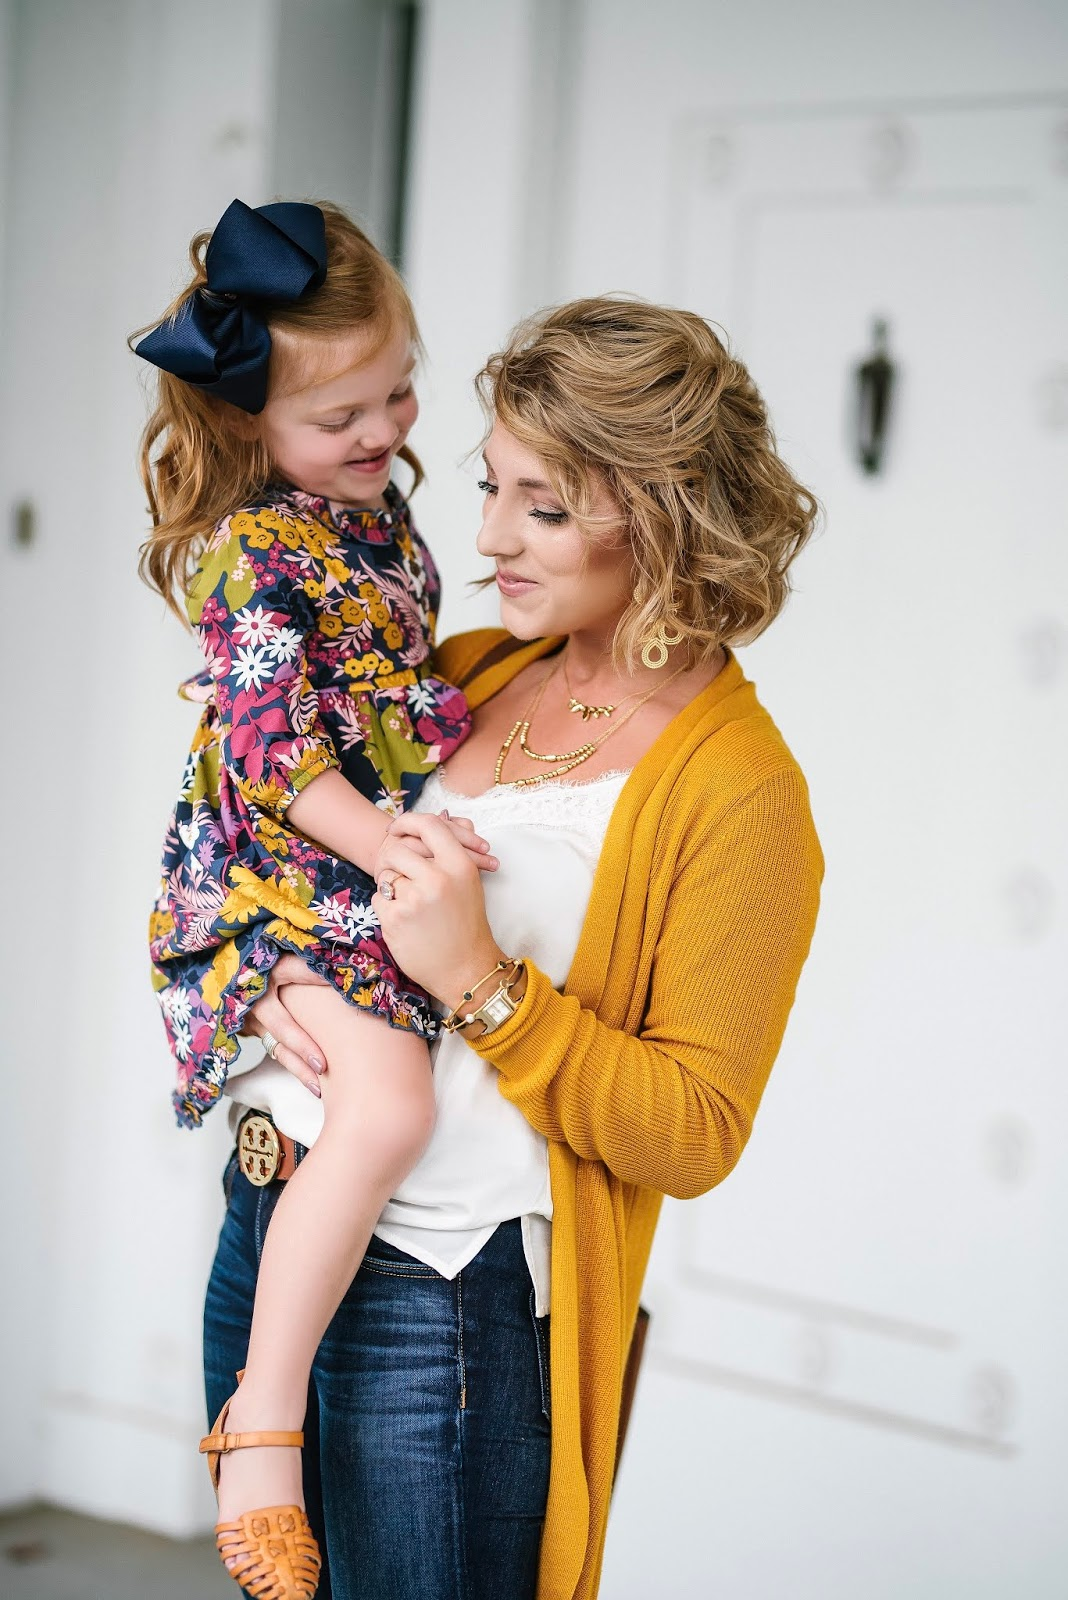 Mommy & Me Transition Looks: Target Style! - Something Delightful Blog @racheltimmerman